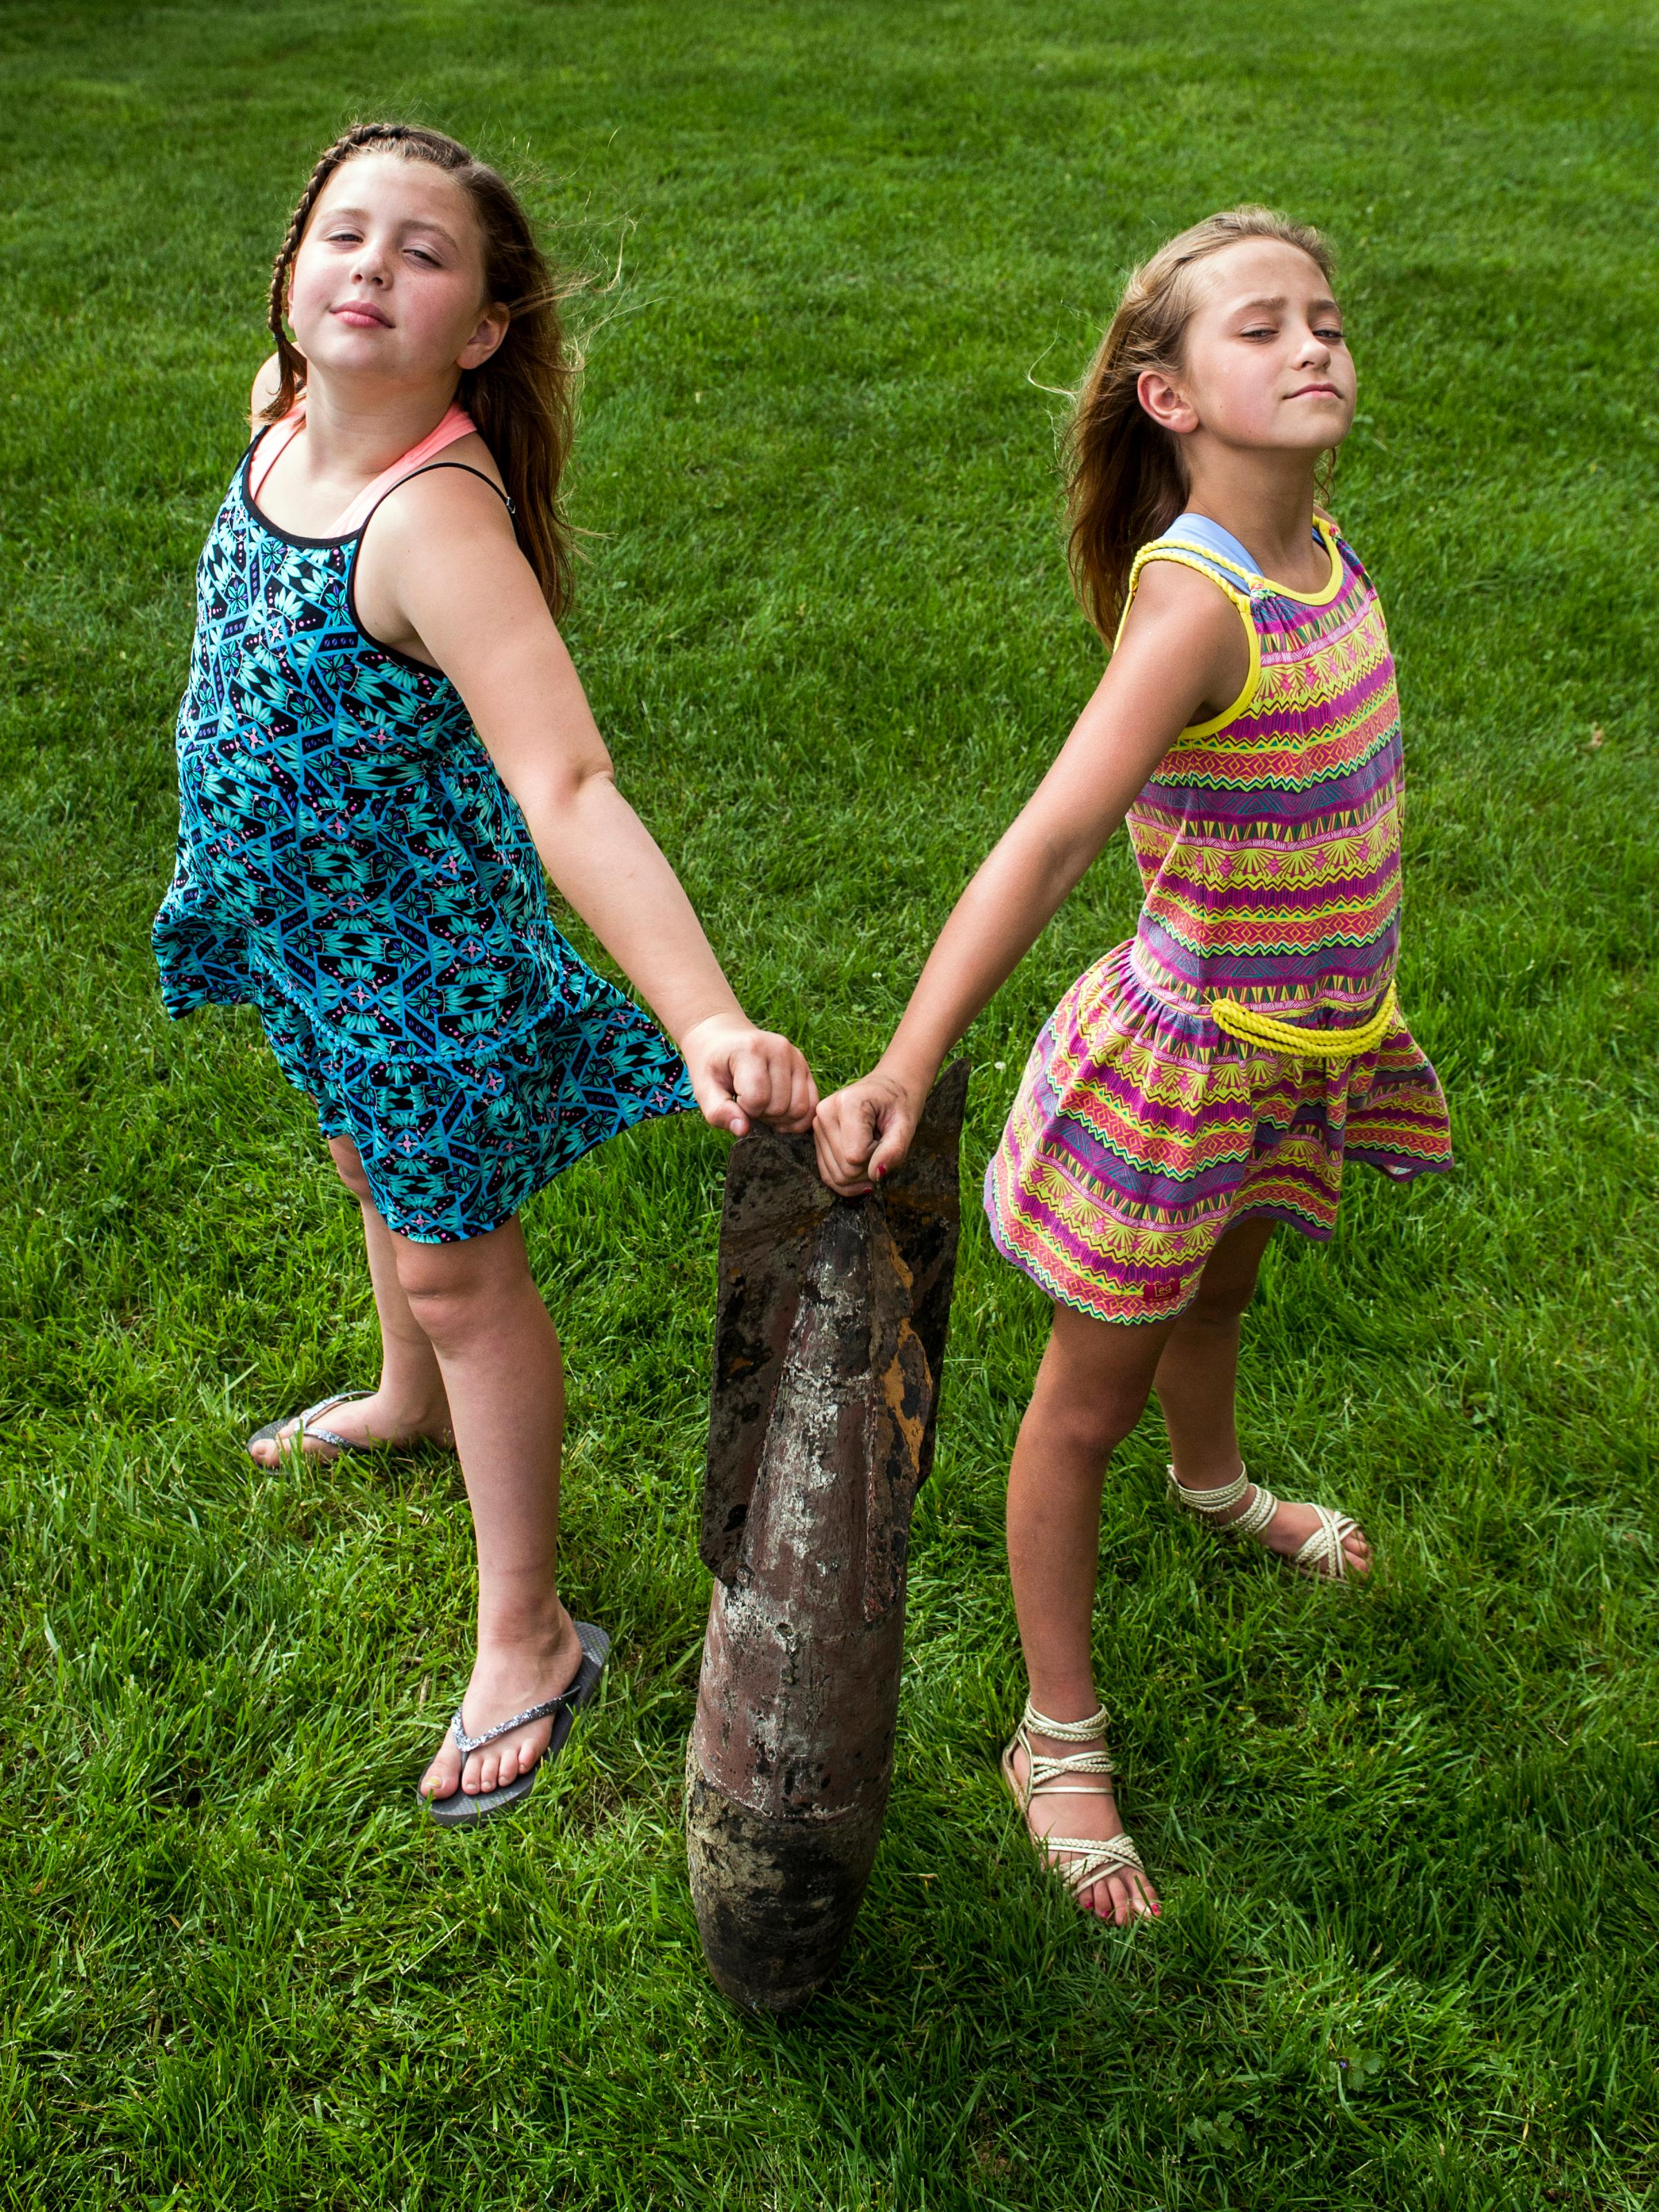 In this Wednesday, May 30, 2018 photo, Paige Burnett, 10, left, and Sage Menzies, 9  pose with a World War I practice bomb they discovered the day before while swimming in Lobdell Lake behind the Menzies' home in Linden, Mich. The two found the bomb while pretending to be mermaids, and diving deep to search through the mucky lake bottom, when they found the tail end of the practice bomb. (Jake May/The Flint Journal via AP)